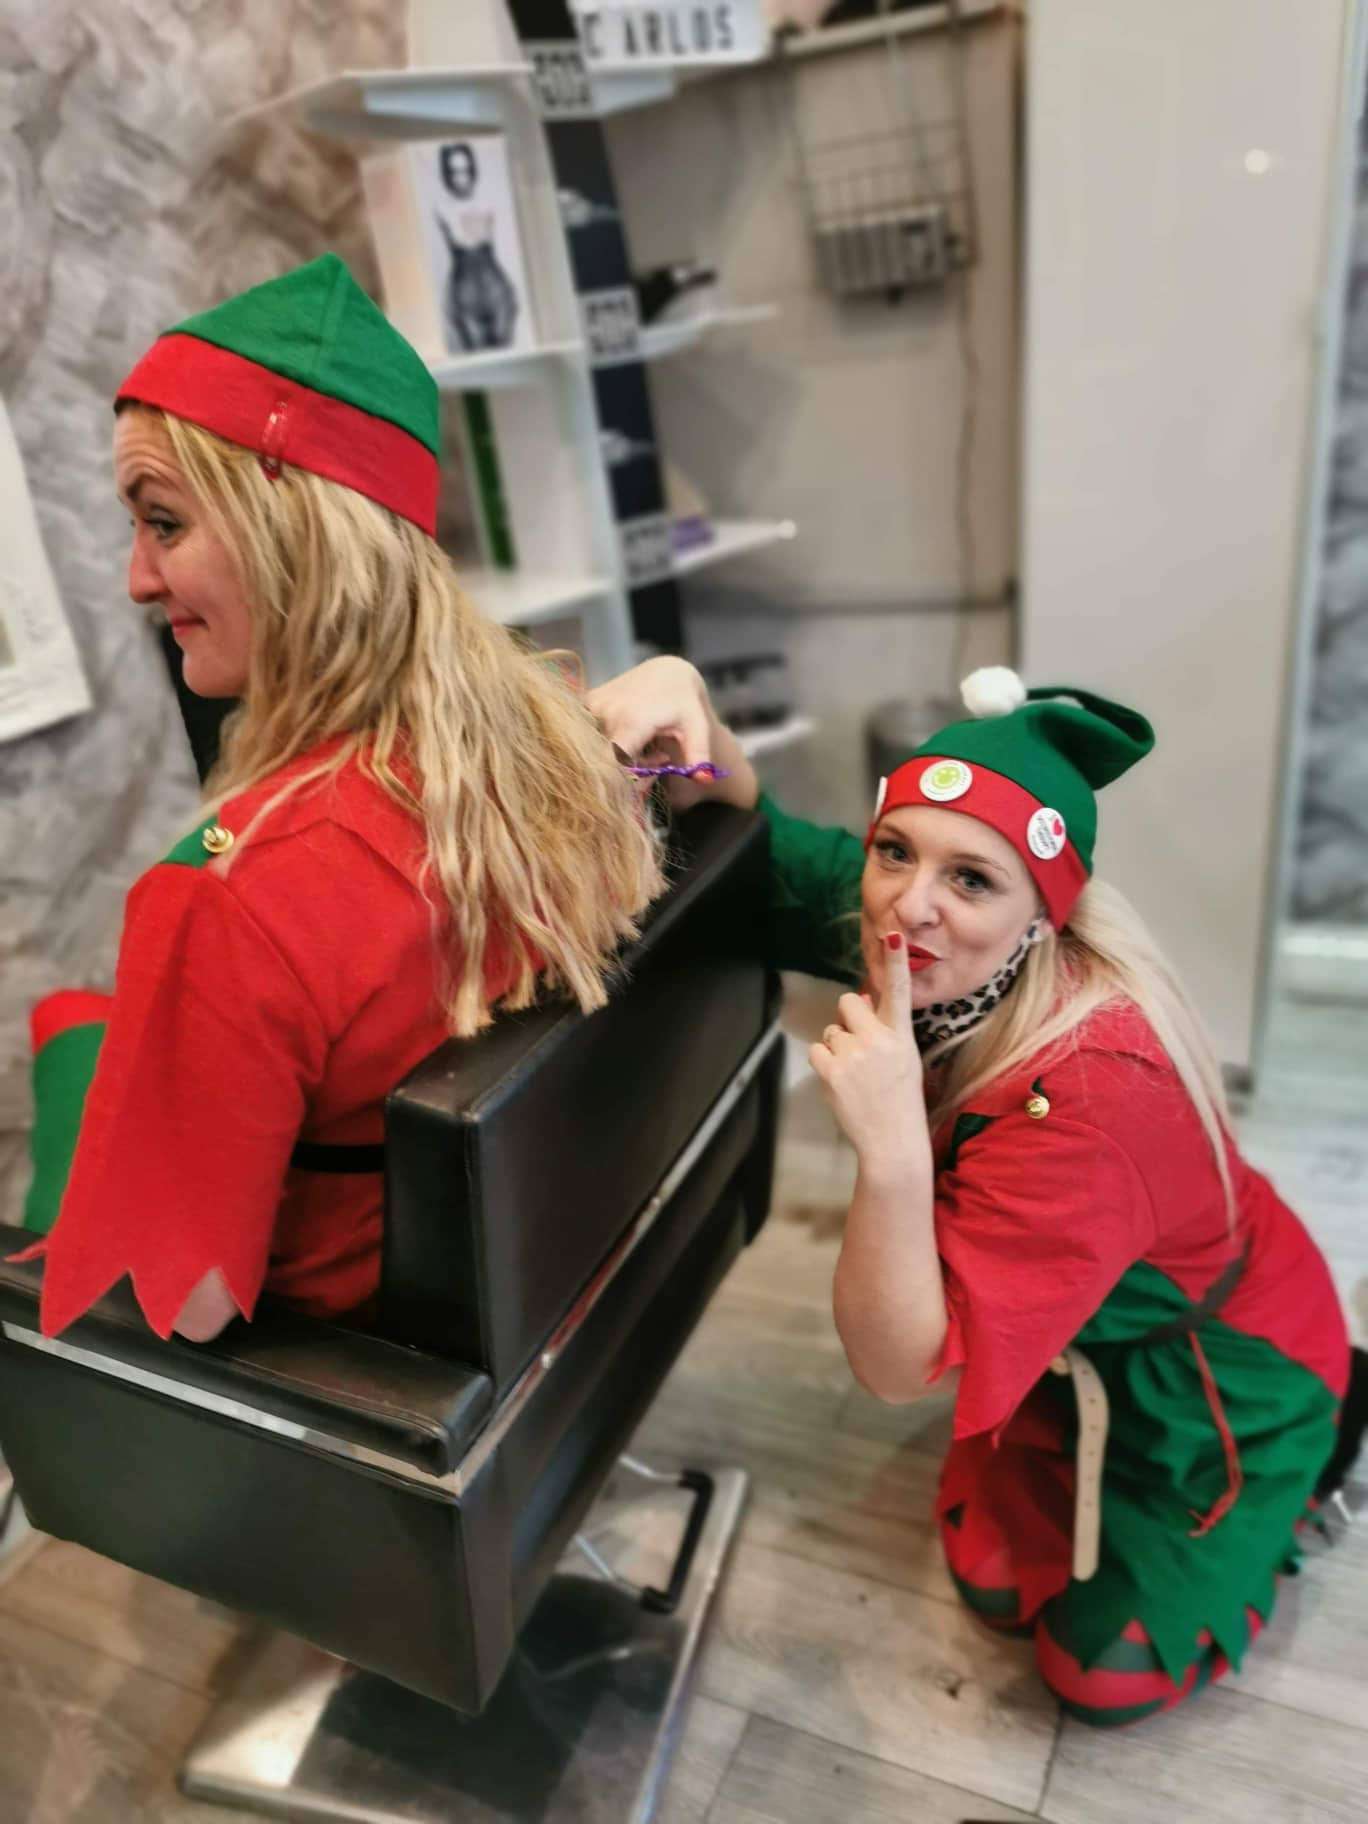 Two women dressed as elves in the hair salon